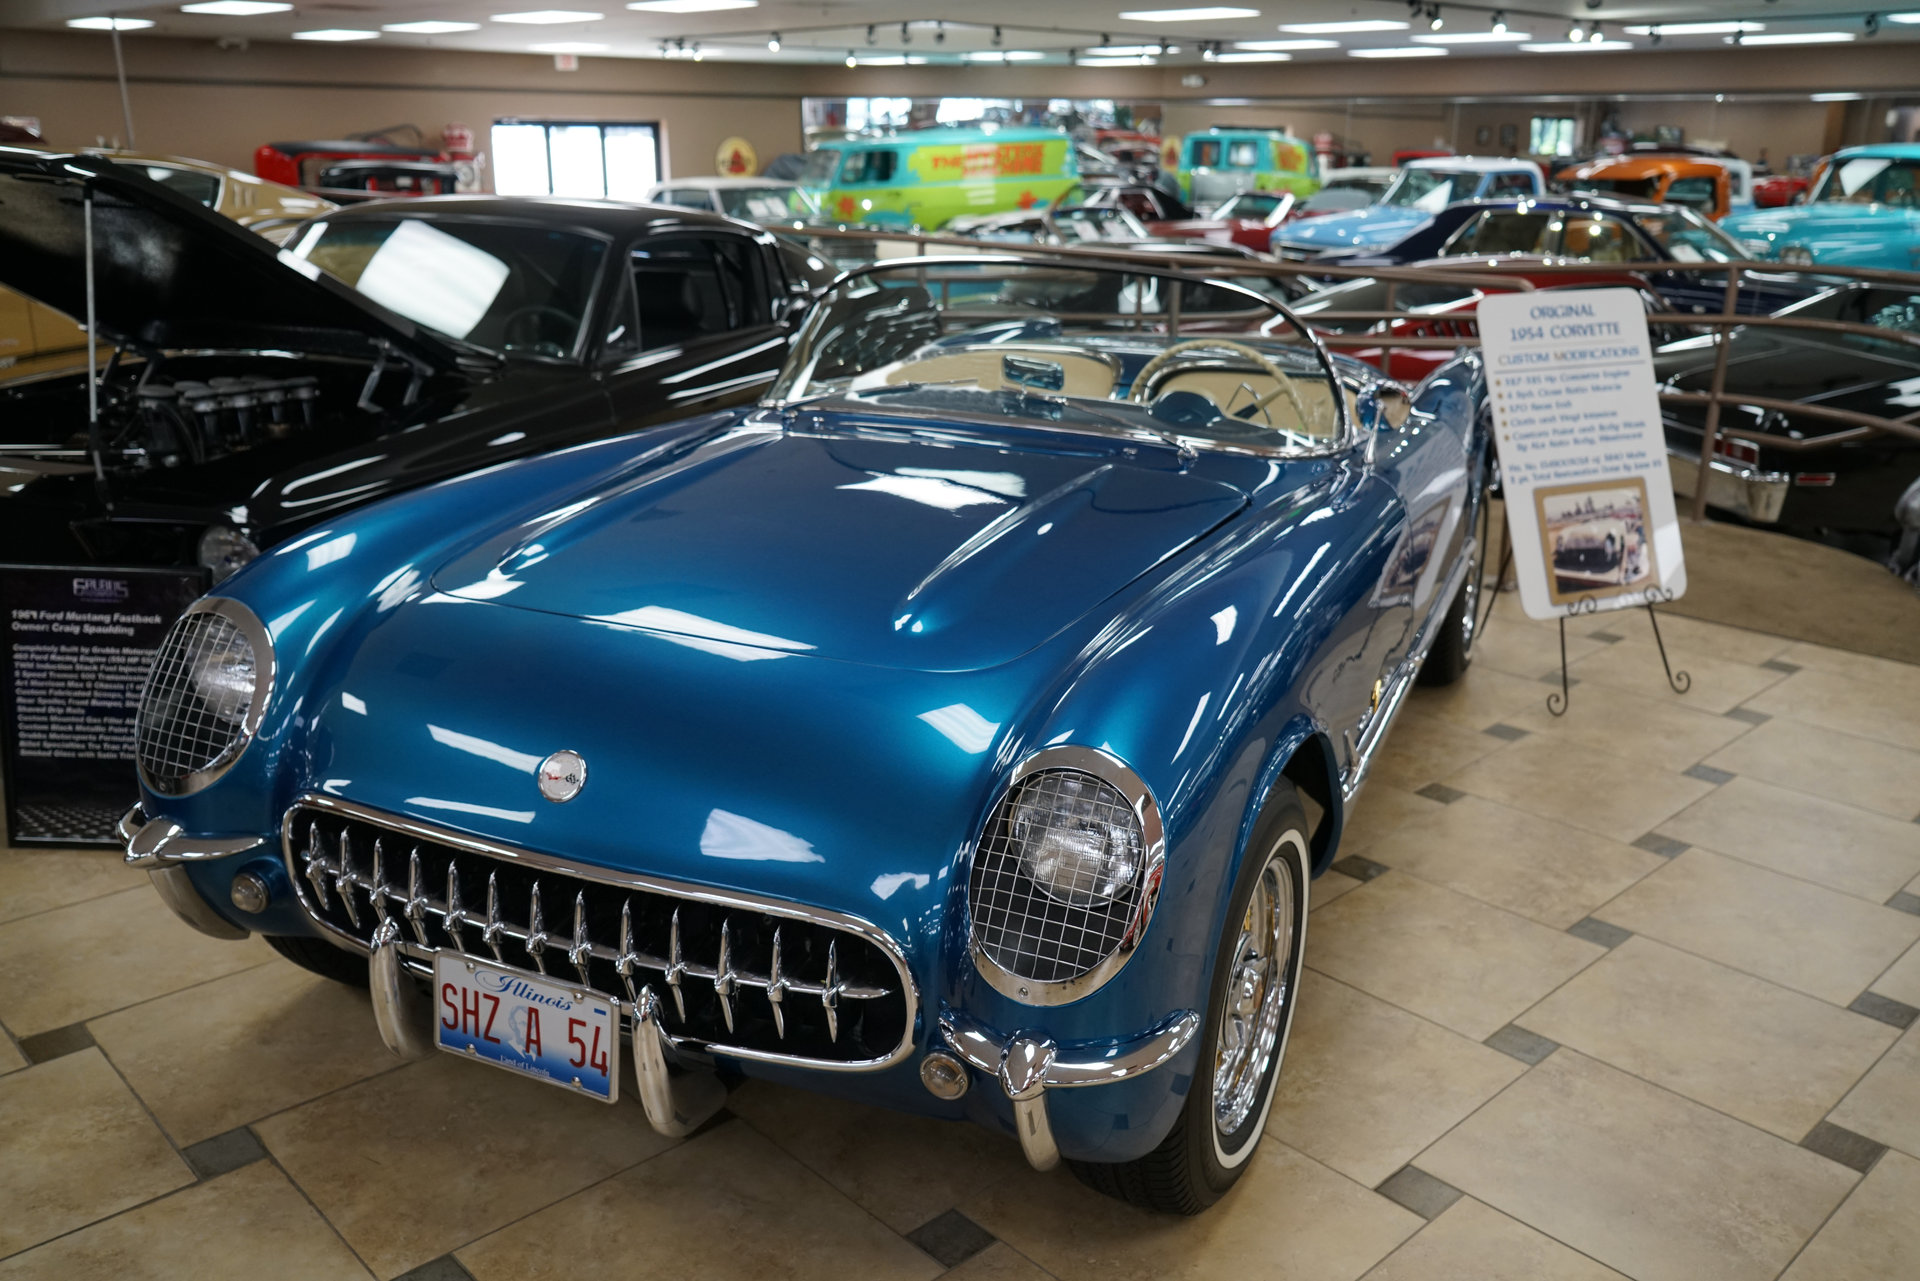 128243a3a1eba hd 1954 chevrolet corvette